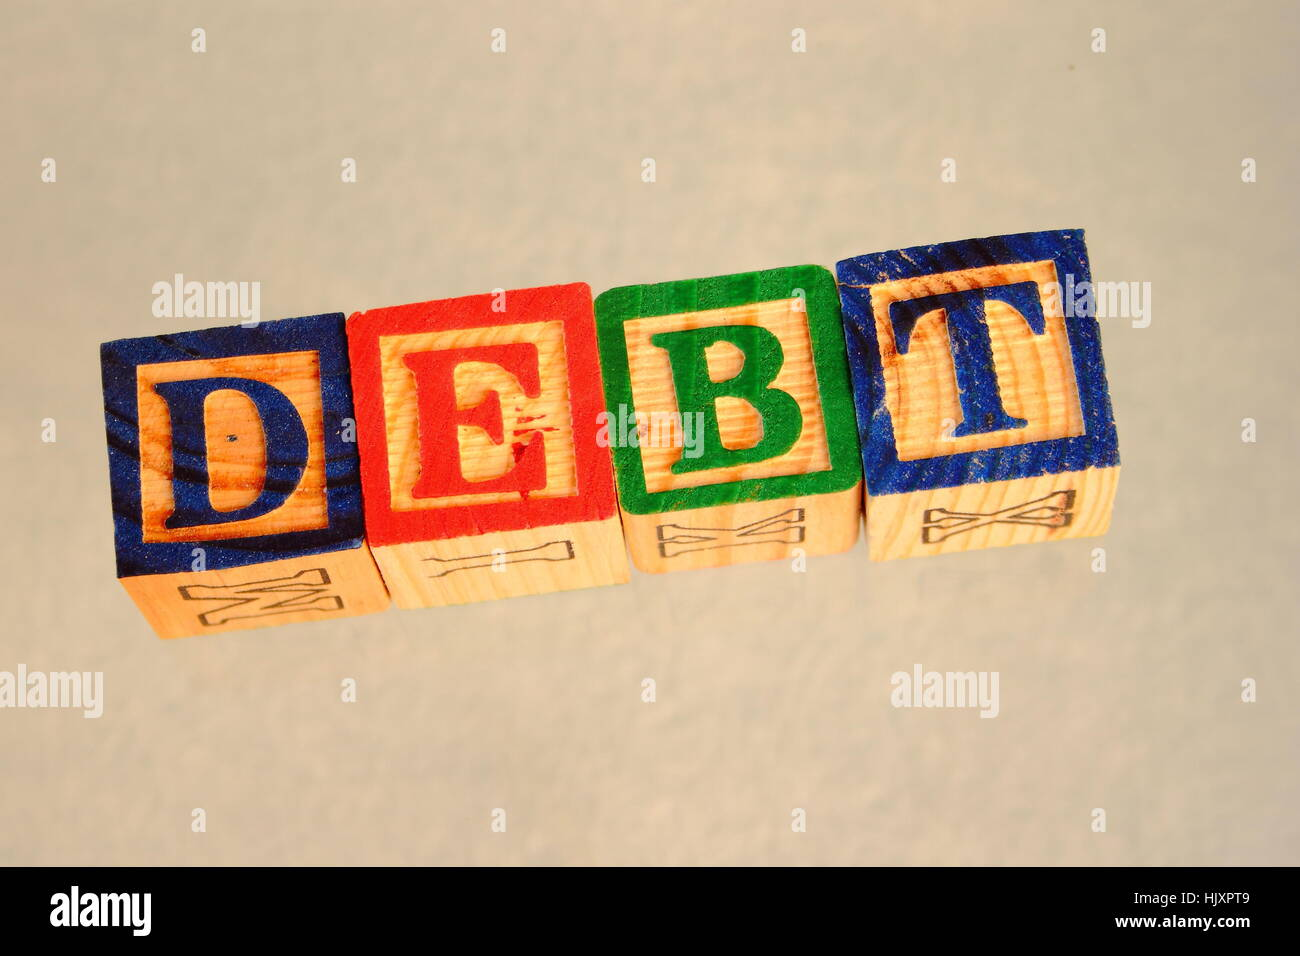 Business term debt visually displayed on a light background image with copy space in landscape format - Stock Image